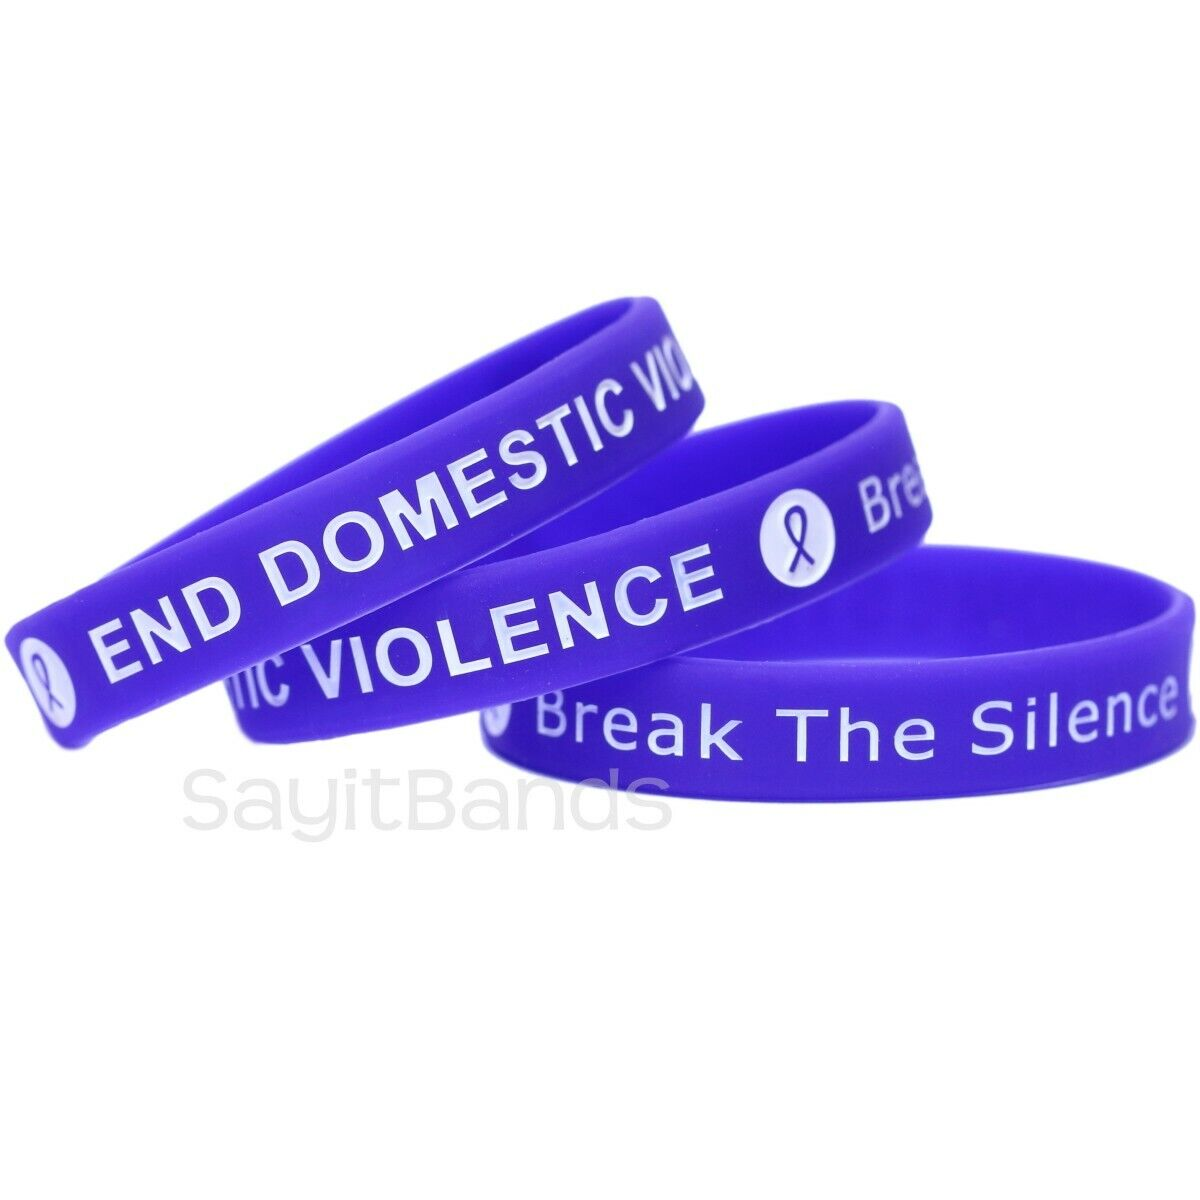 50 End Domestic Violence Bracelets - Debossed Silicone Awareness Wristbands - $39.88